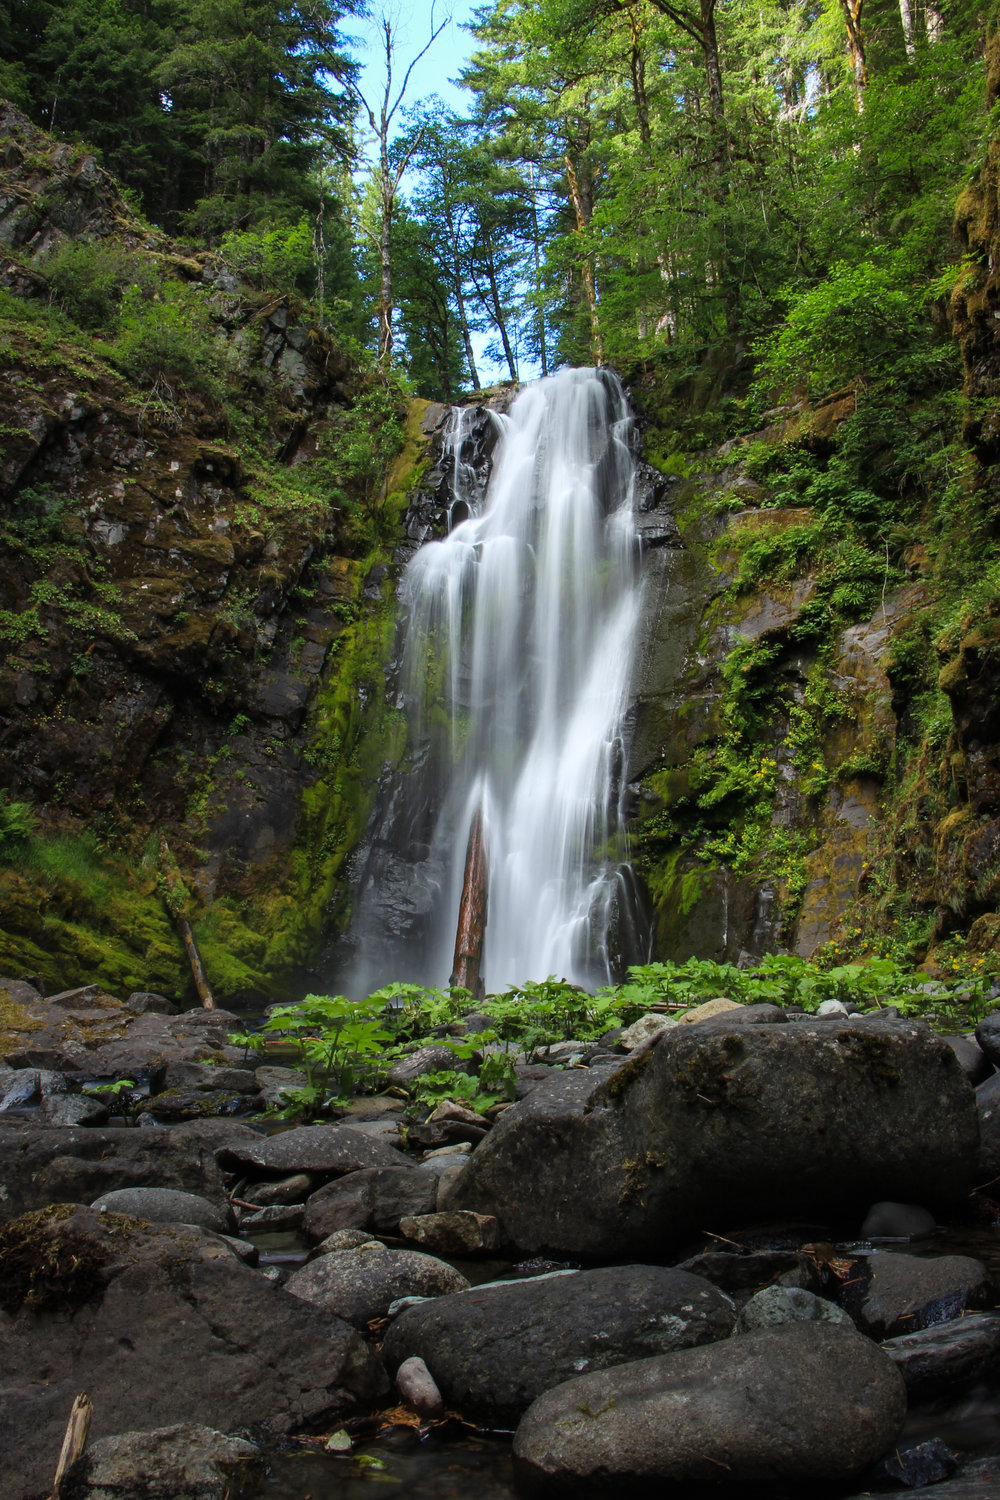 Chinook Falls, Washington State